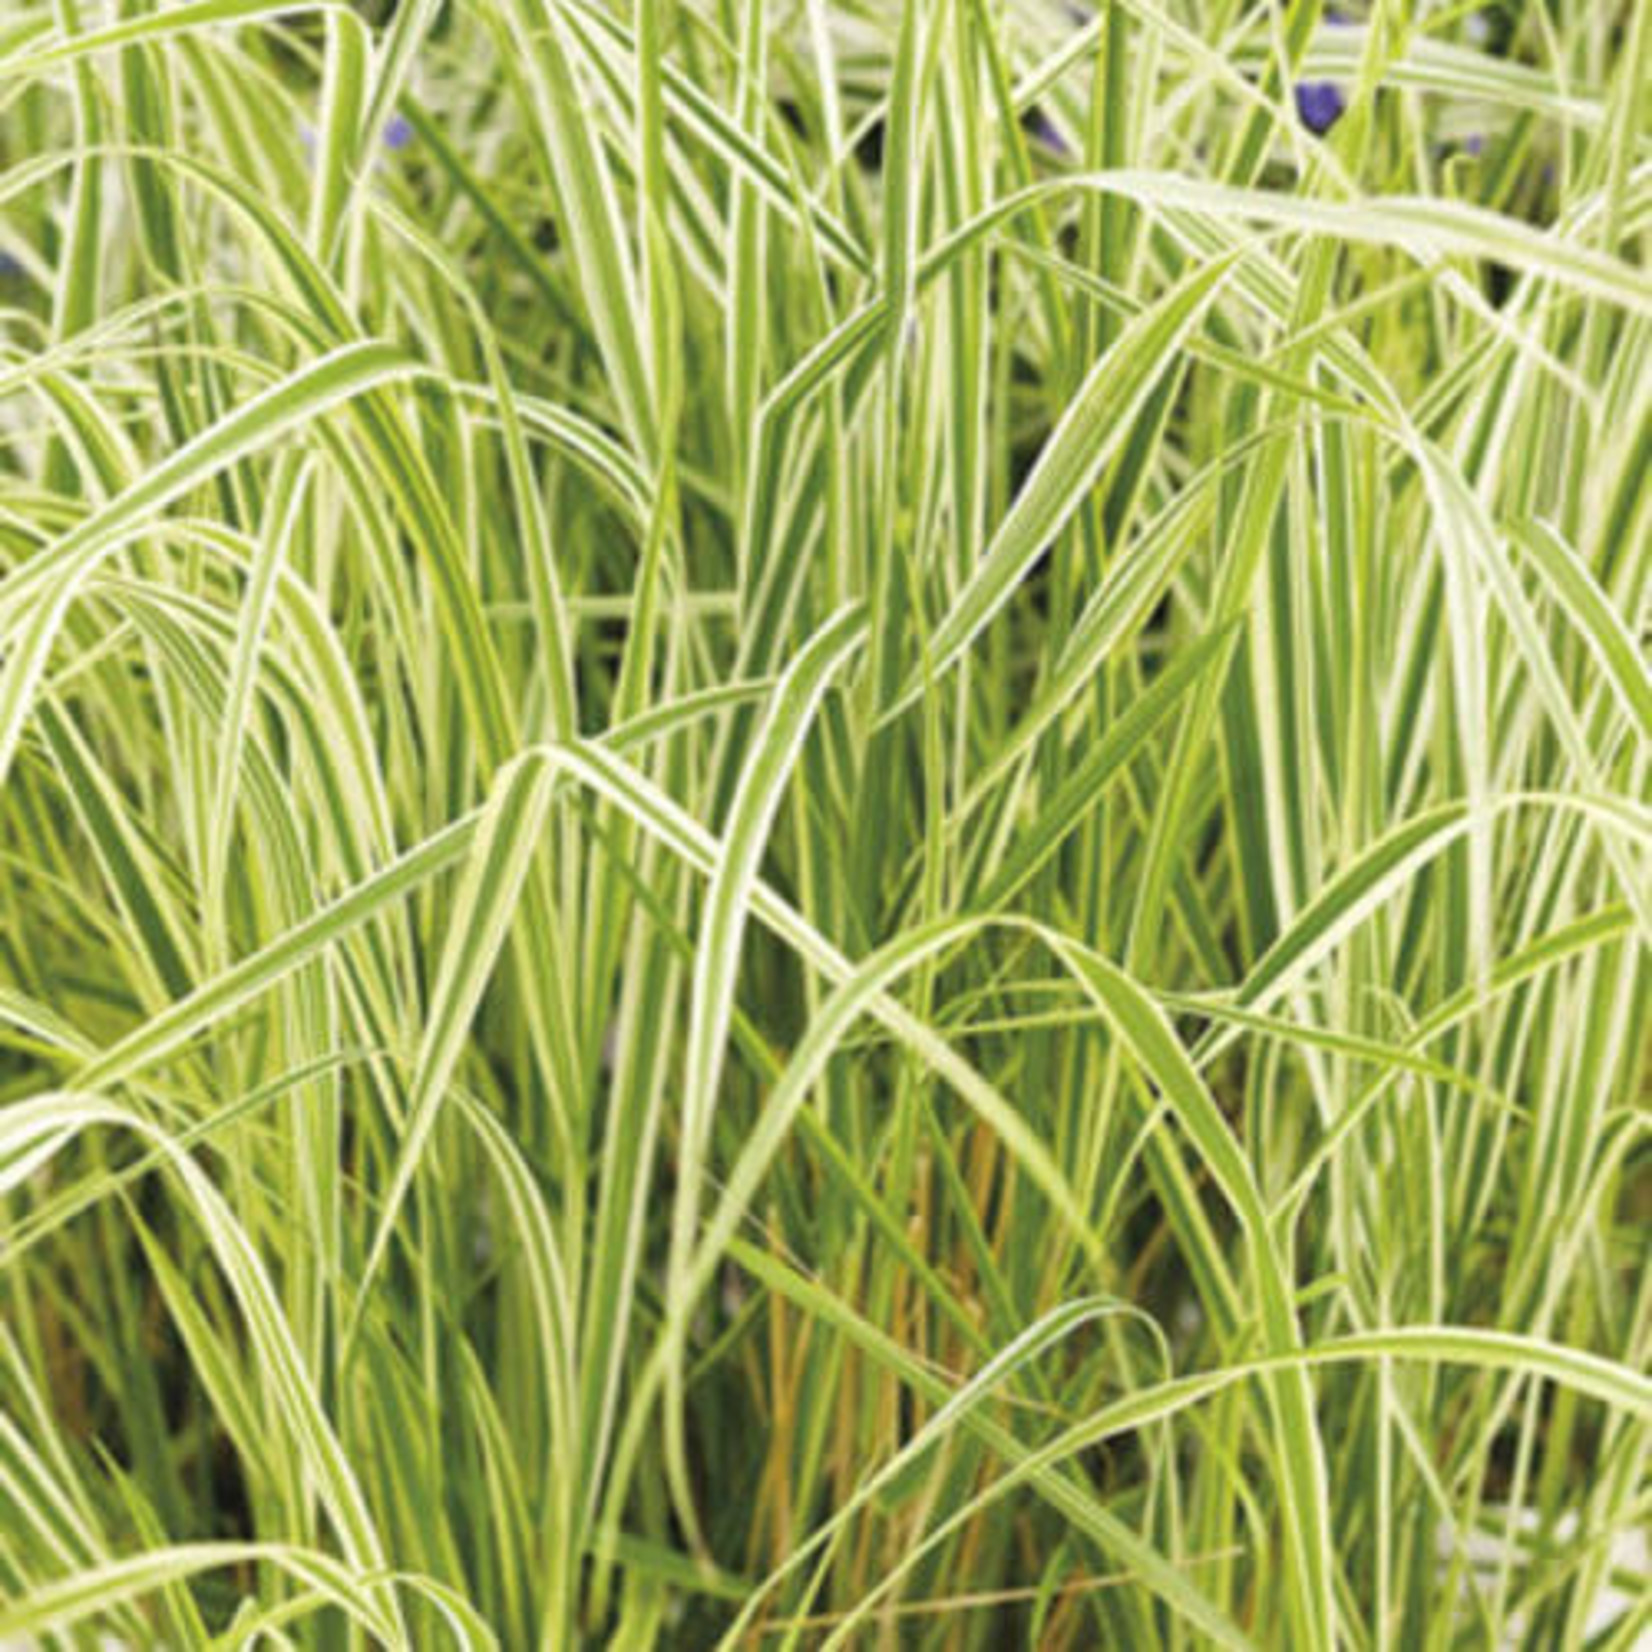 Feather Reed Grass - 'Overdam' 1 gal